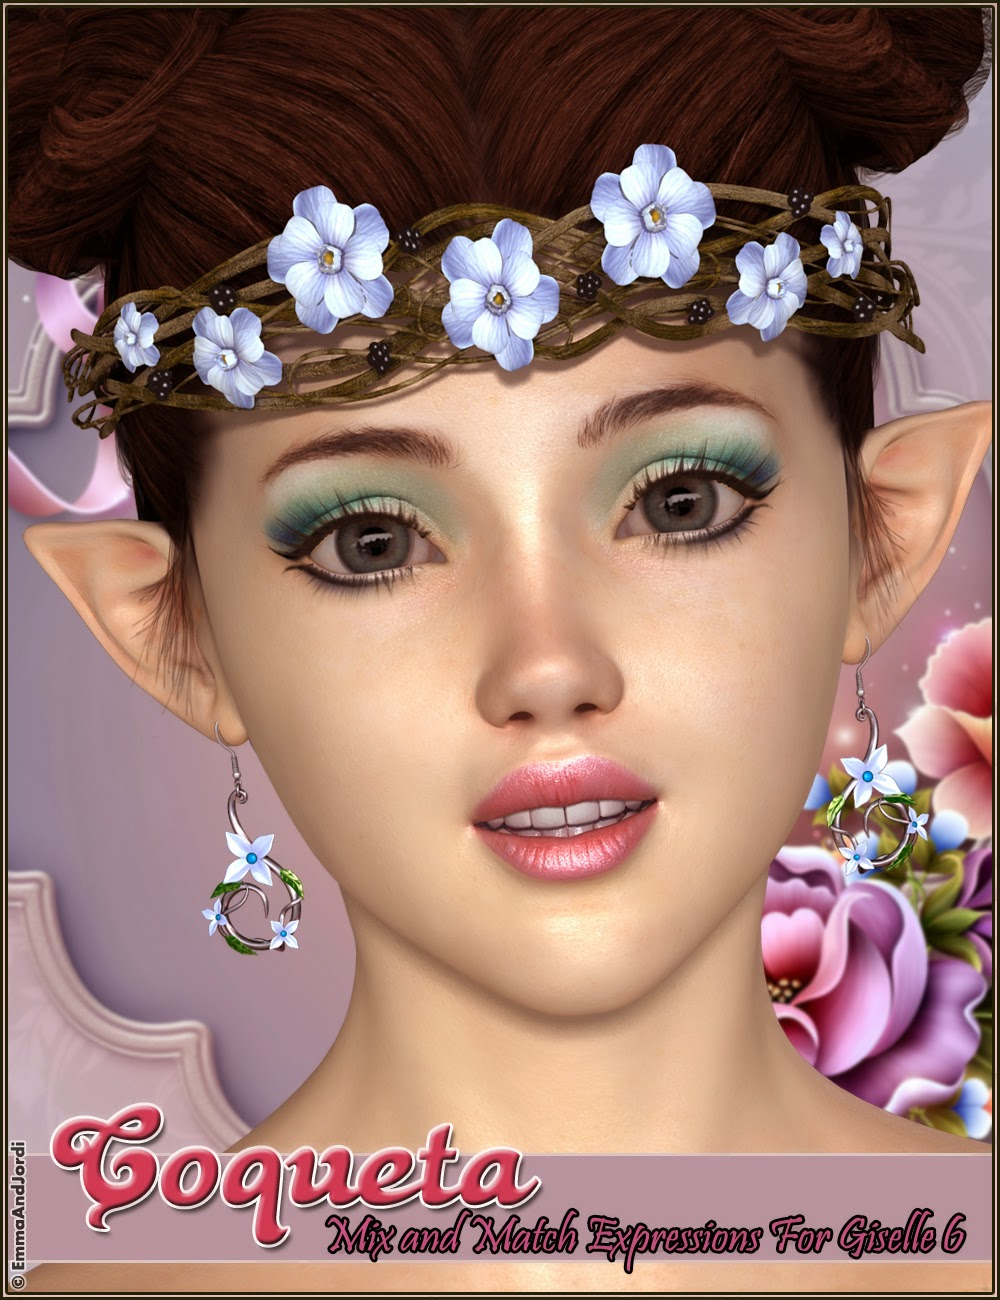 http://www.daz3d.com/coqueta-mix-and-match-expressions-for-giselle-6